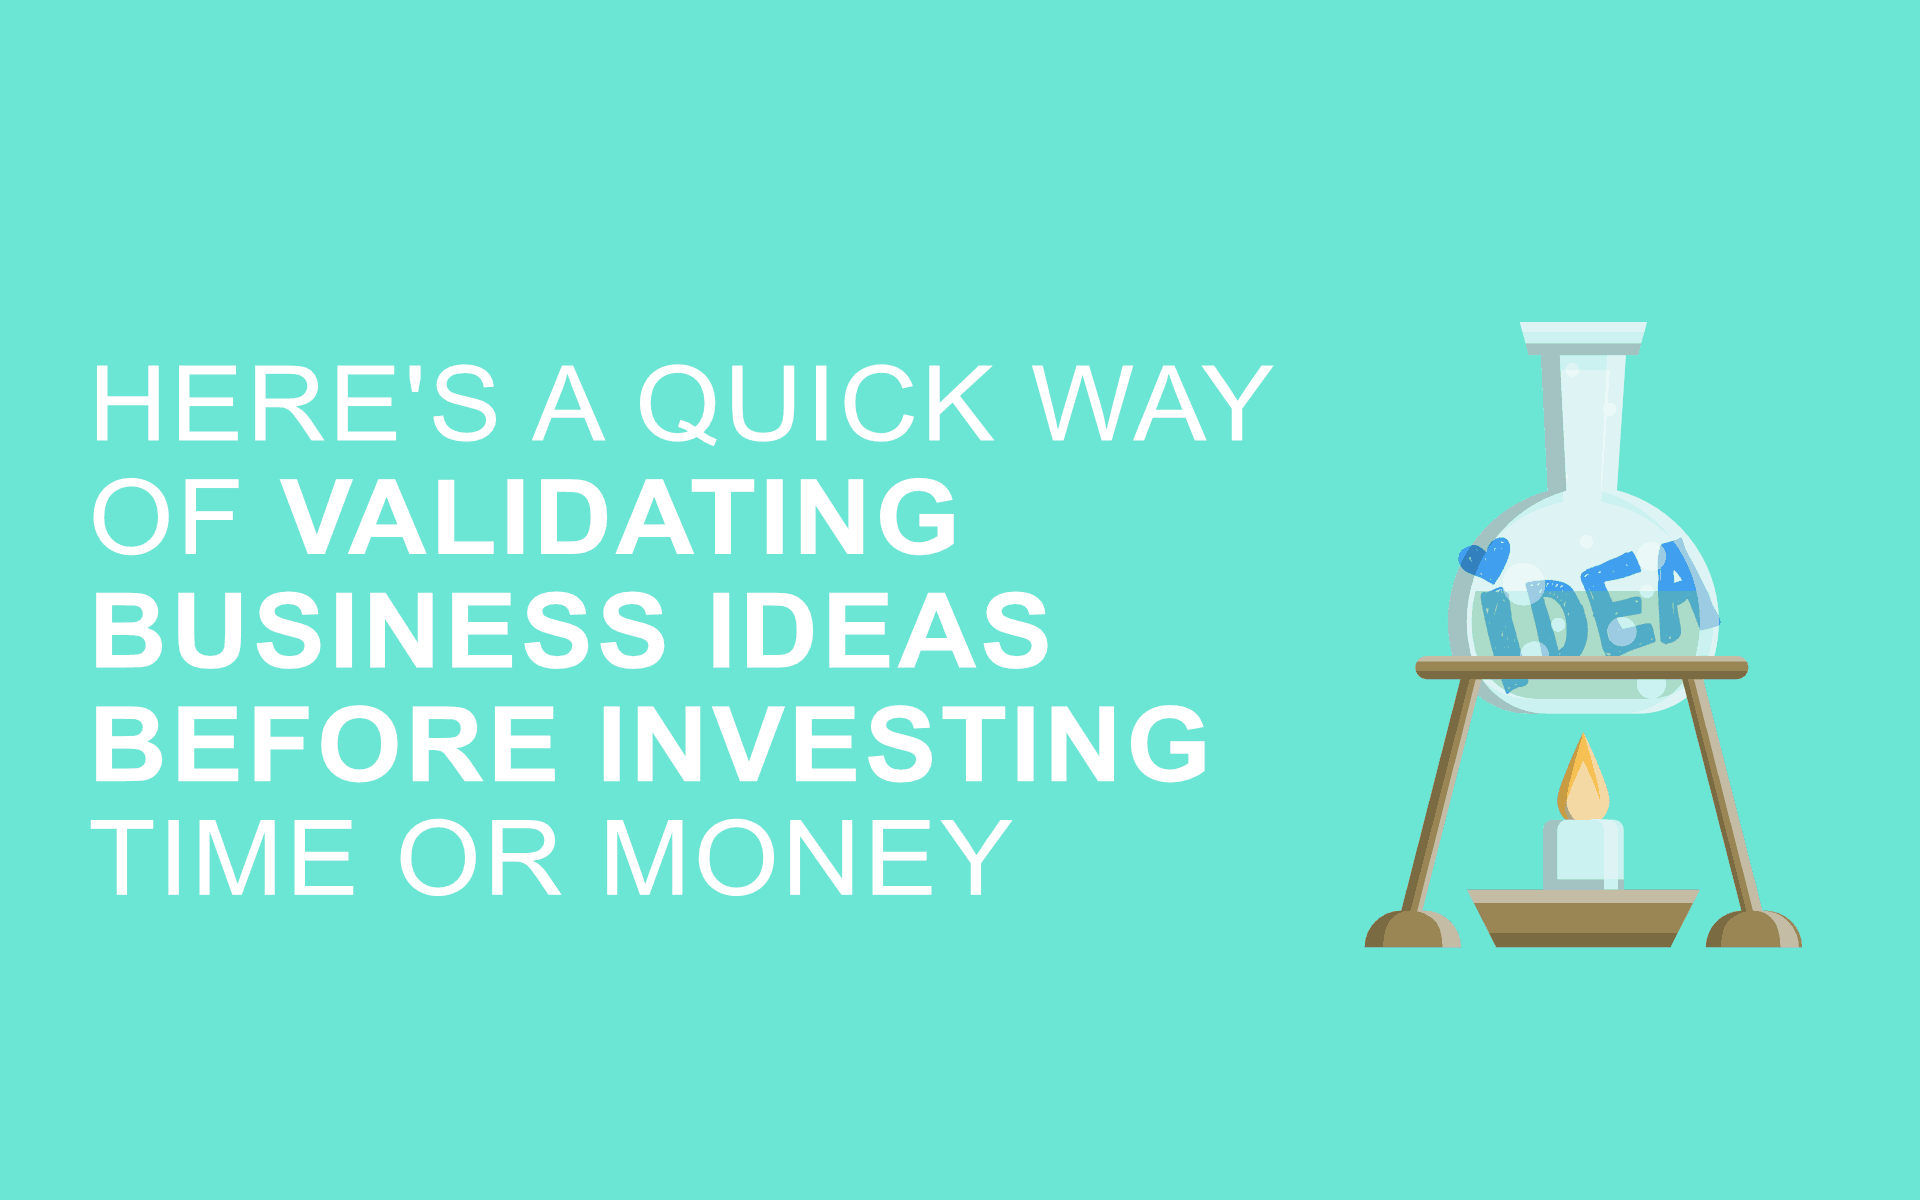 Here's a quick way of validating business ideas before investing time or money.